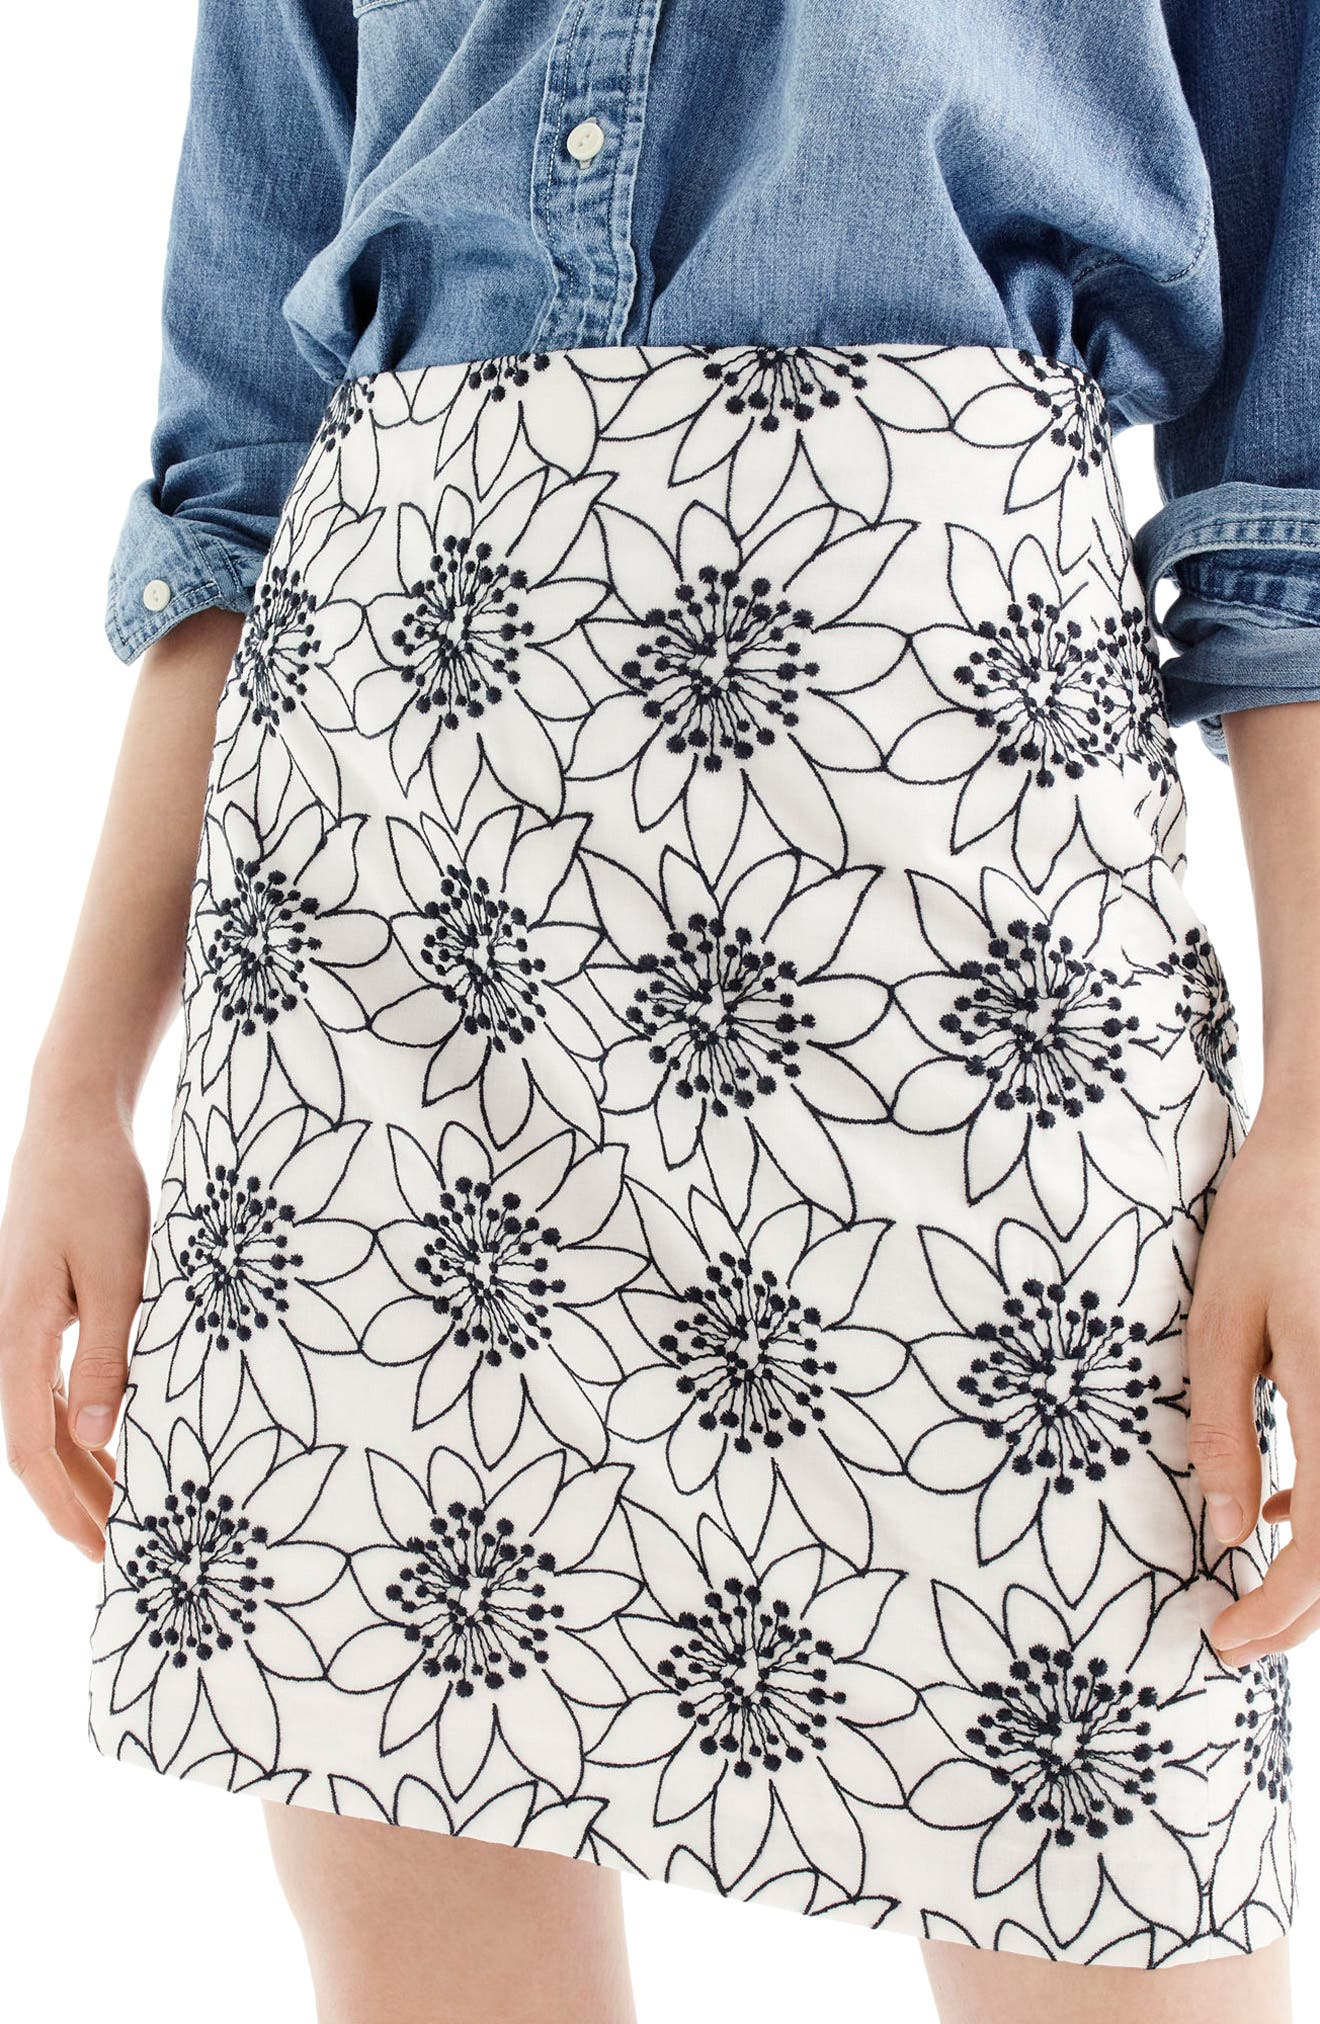 J. CREW J.Crew Embroidered Floral Miniskirt